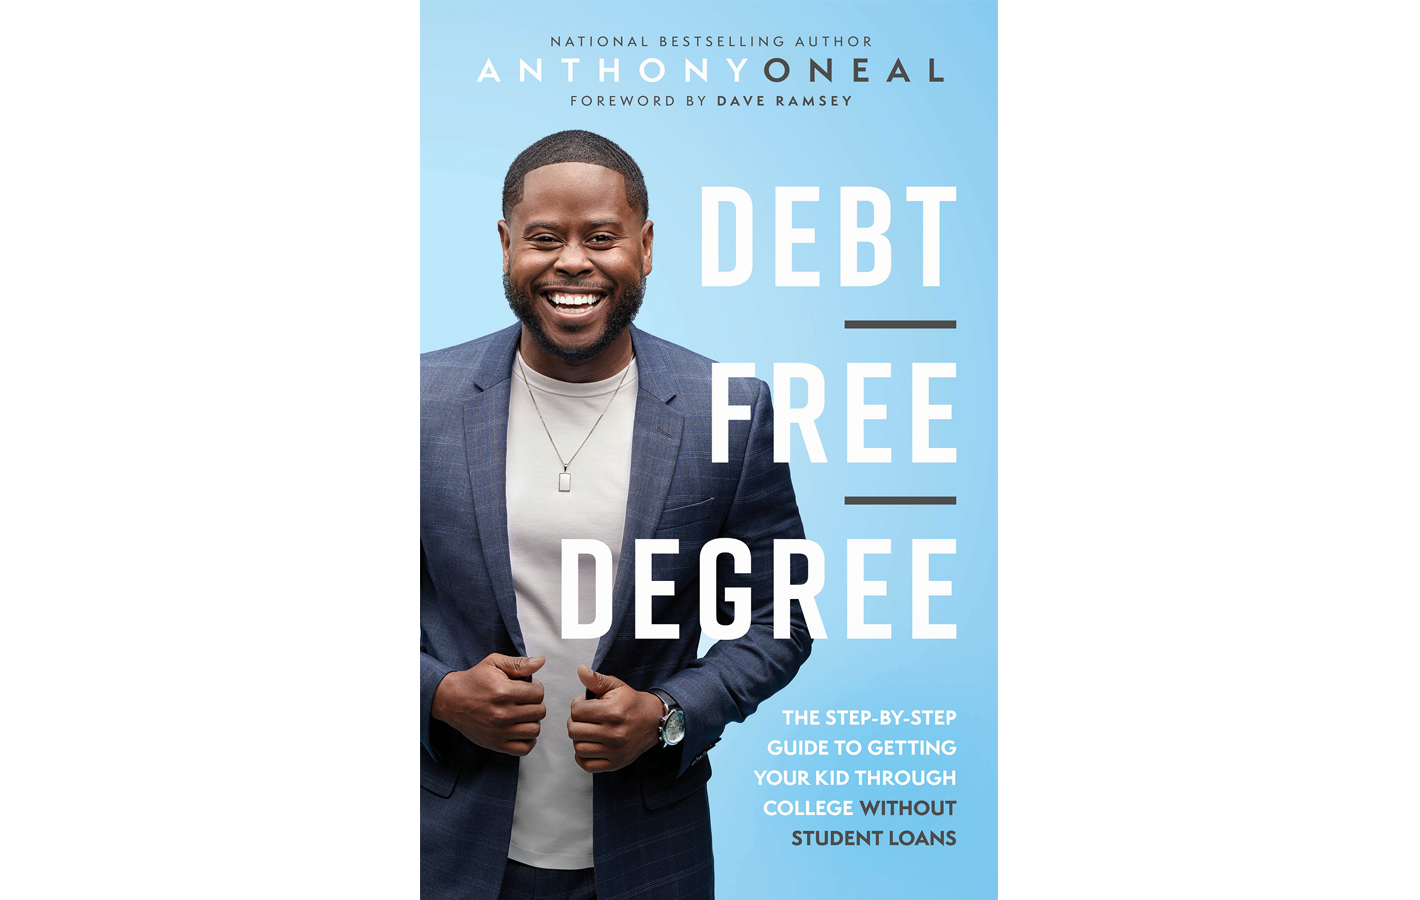 Cover for Debt Free Degree book